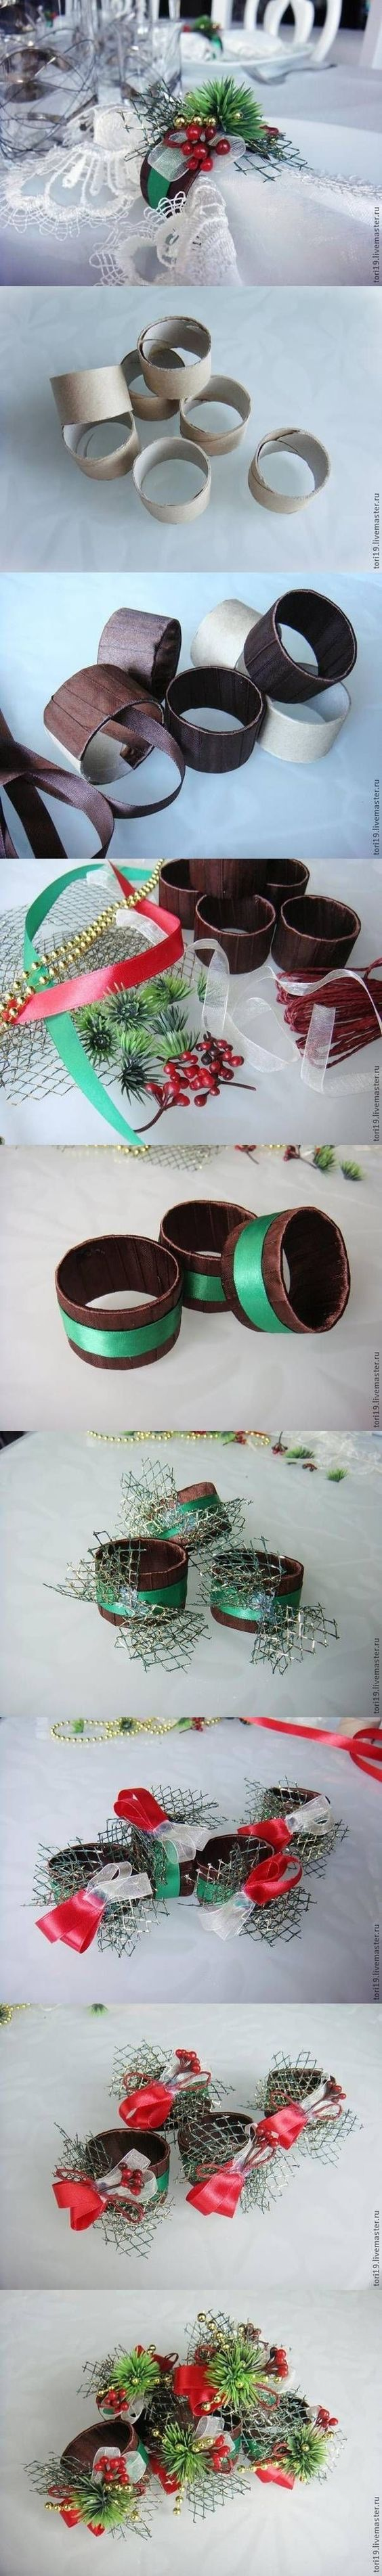 how to make toilet paper napkin rings diy christmas diy crafts do it yourself diy projects. Black Bedroom Furniture Sets. Home Design Ideas